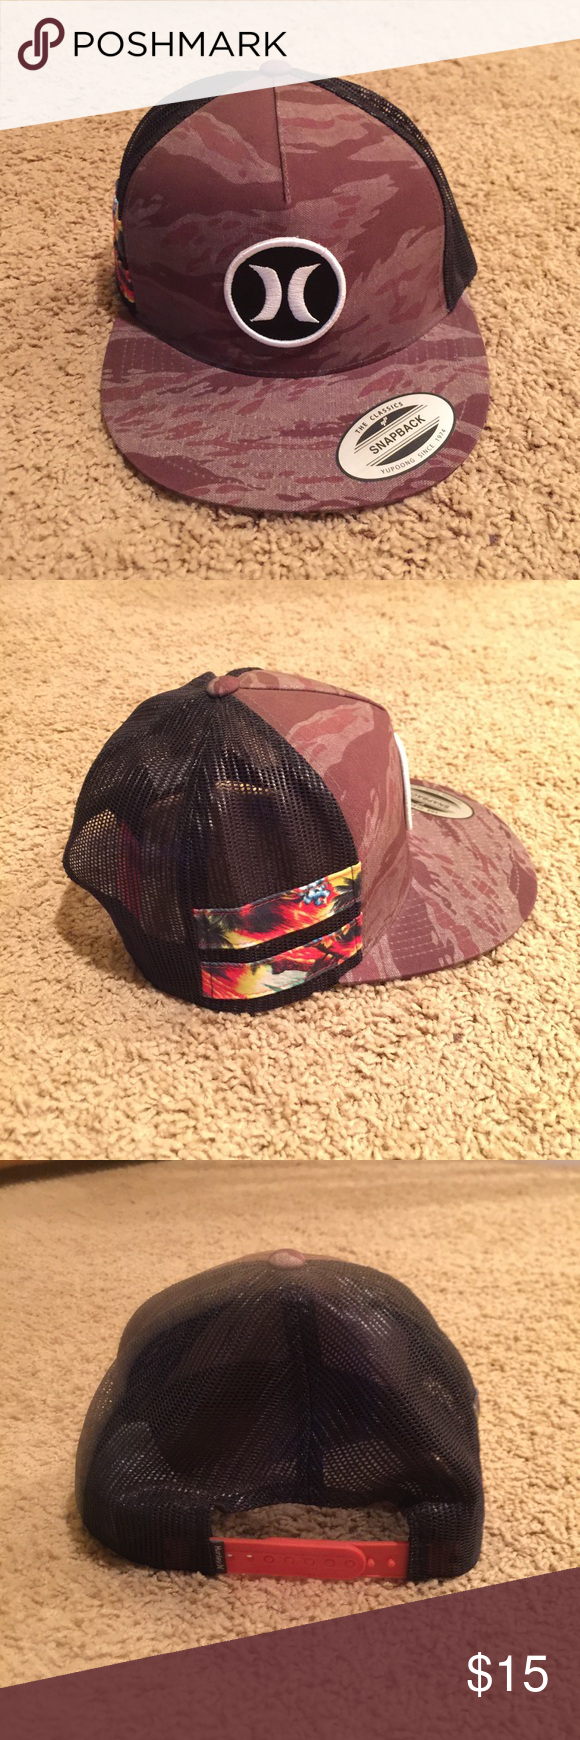 Hurley SnapBack Hat Hurley The Classics SnapBack. In great condition only  wore a couple times. No stains. Hurley Accessories Hats  e48860009d12